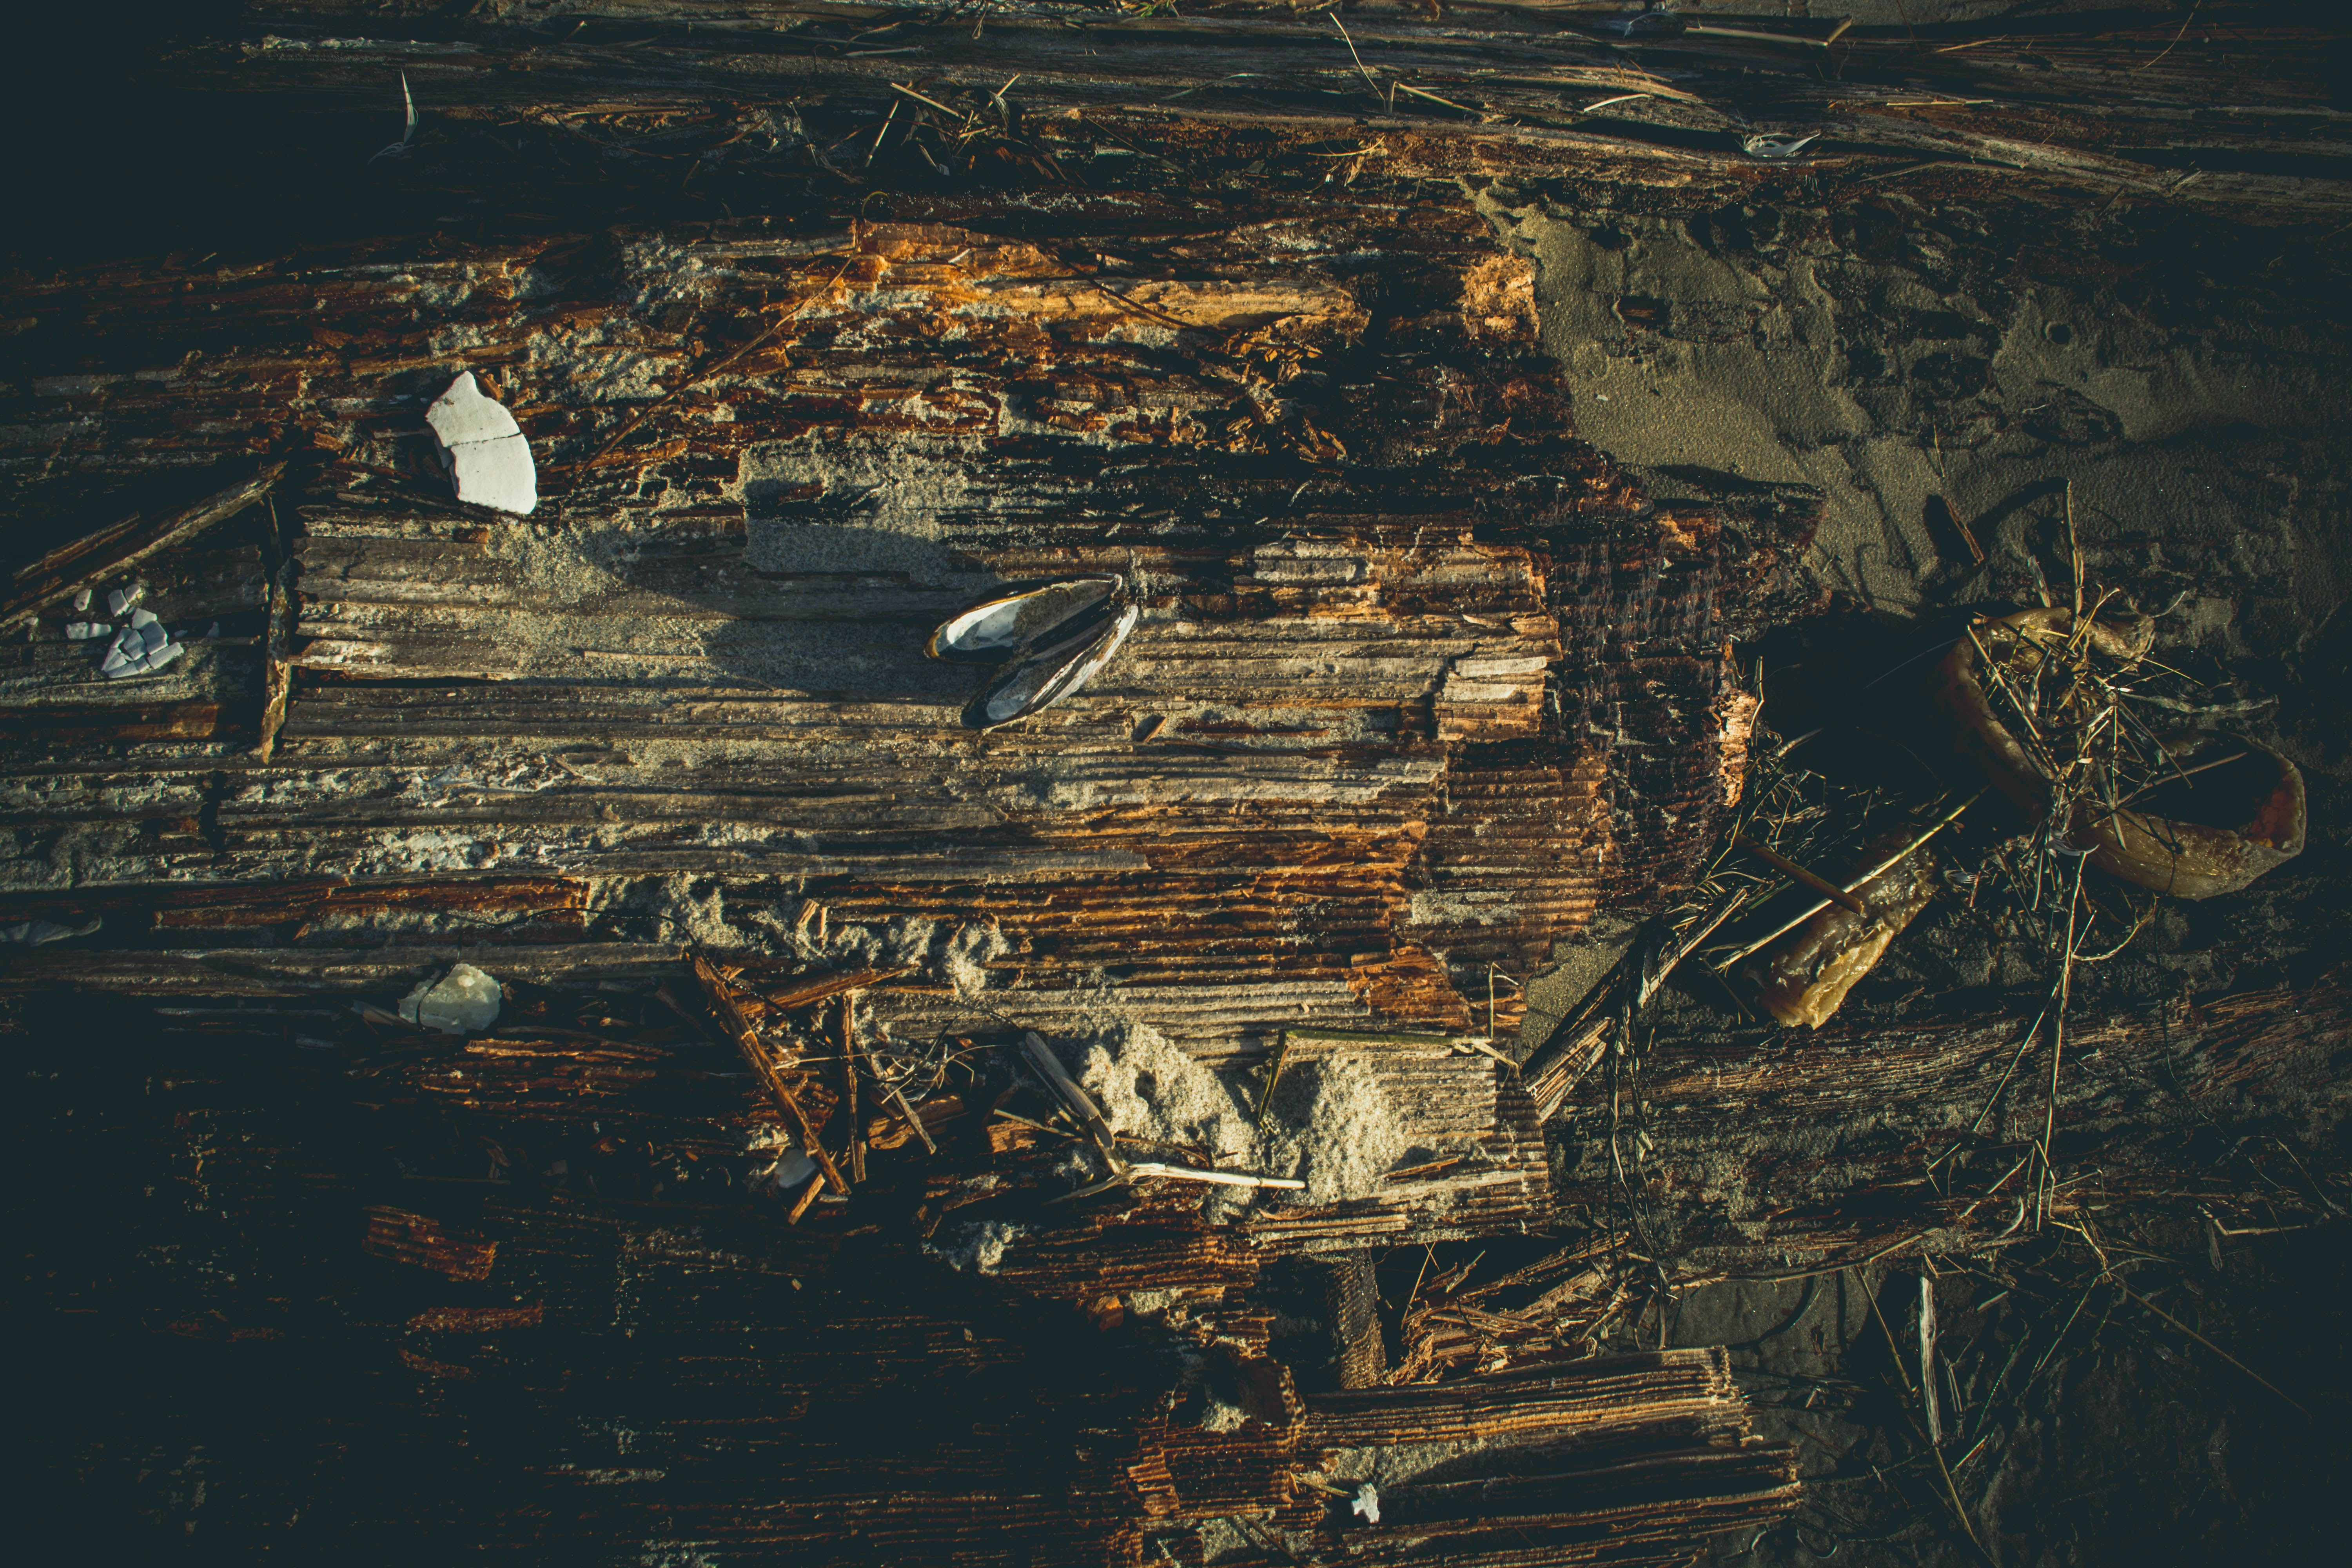 Flat Lay Photography of Winged Insect on Rotten Wood